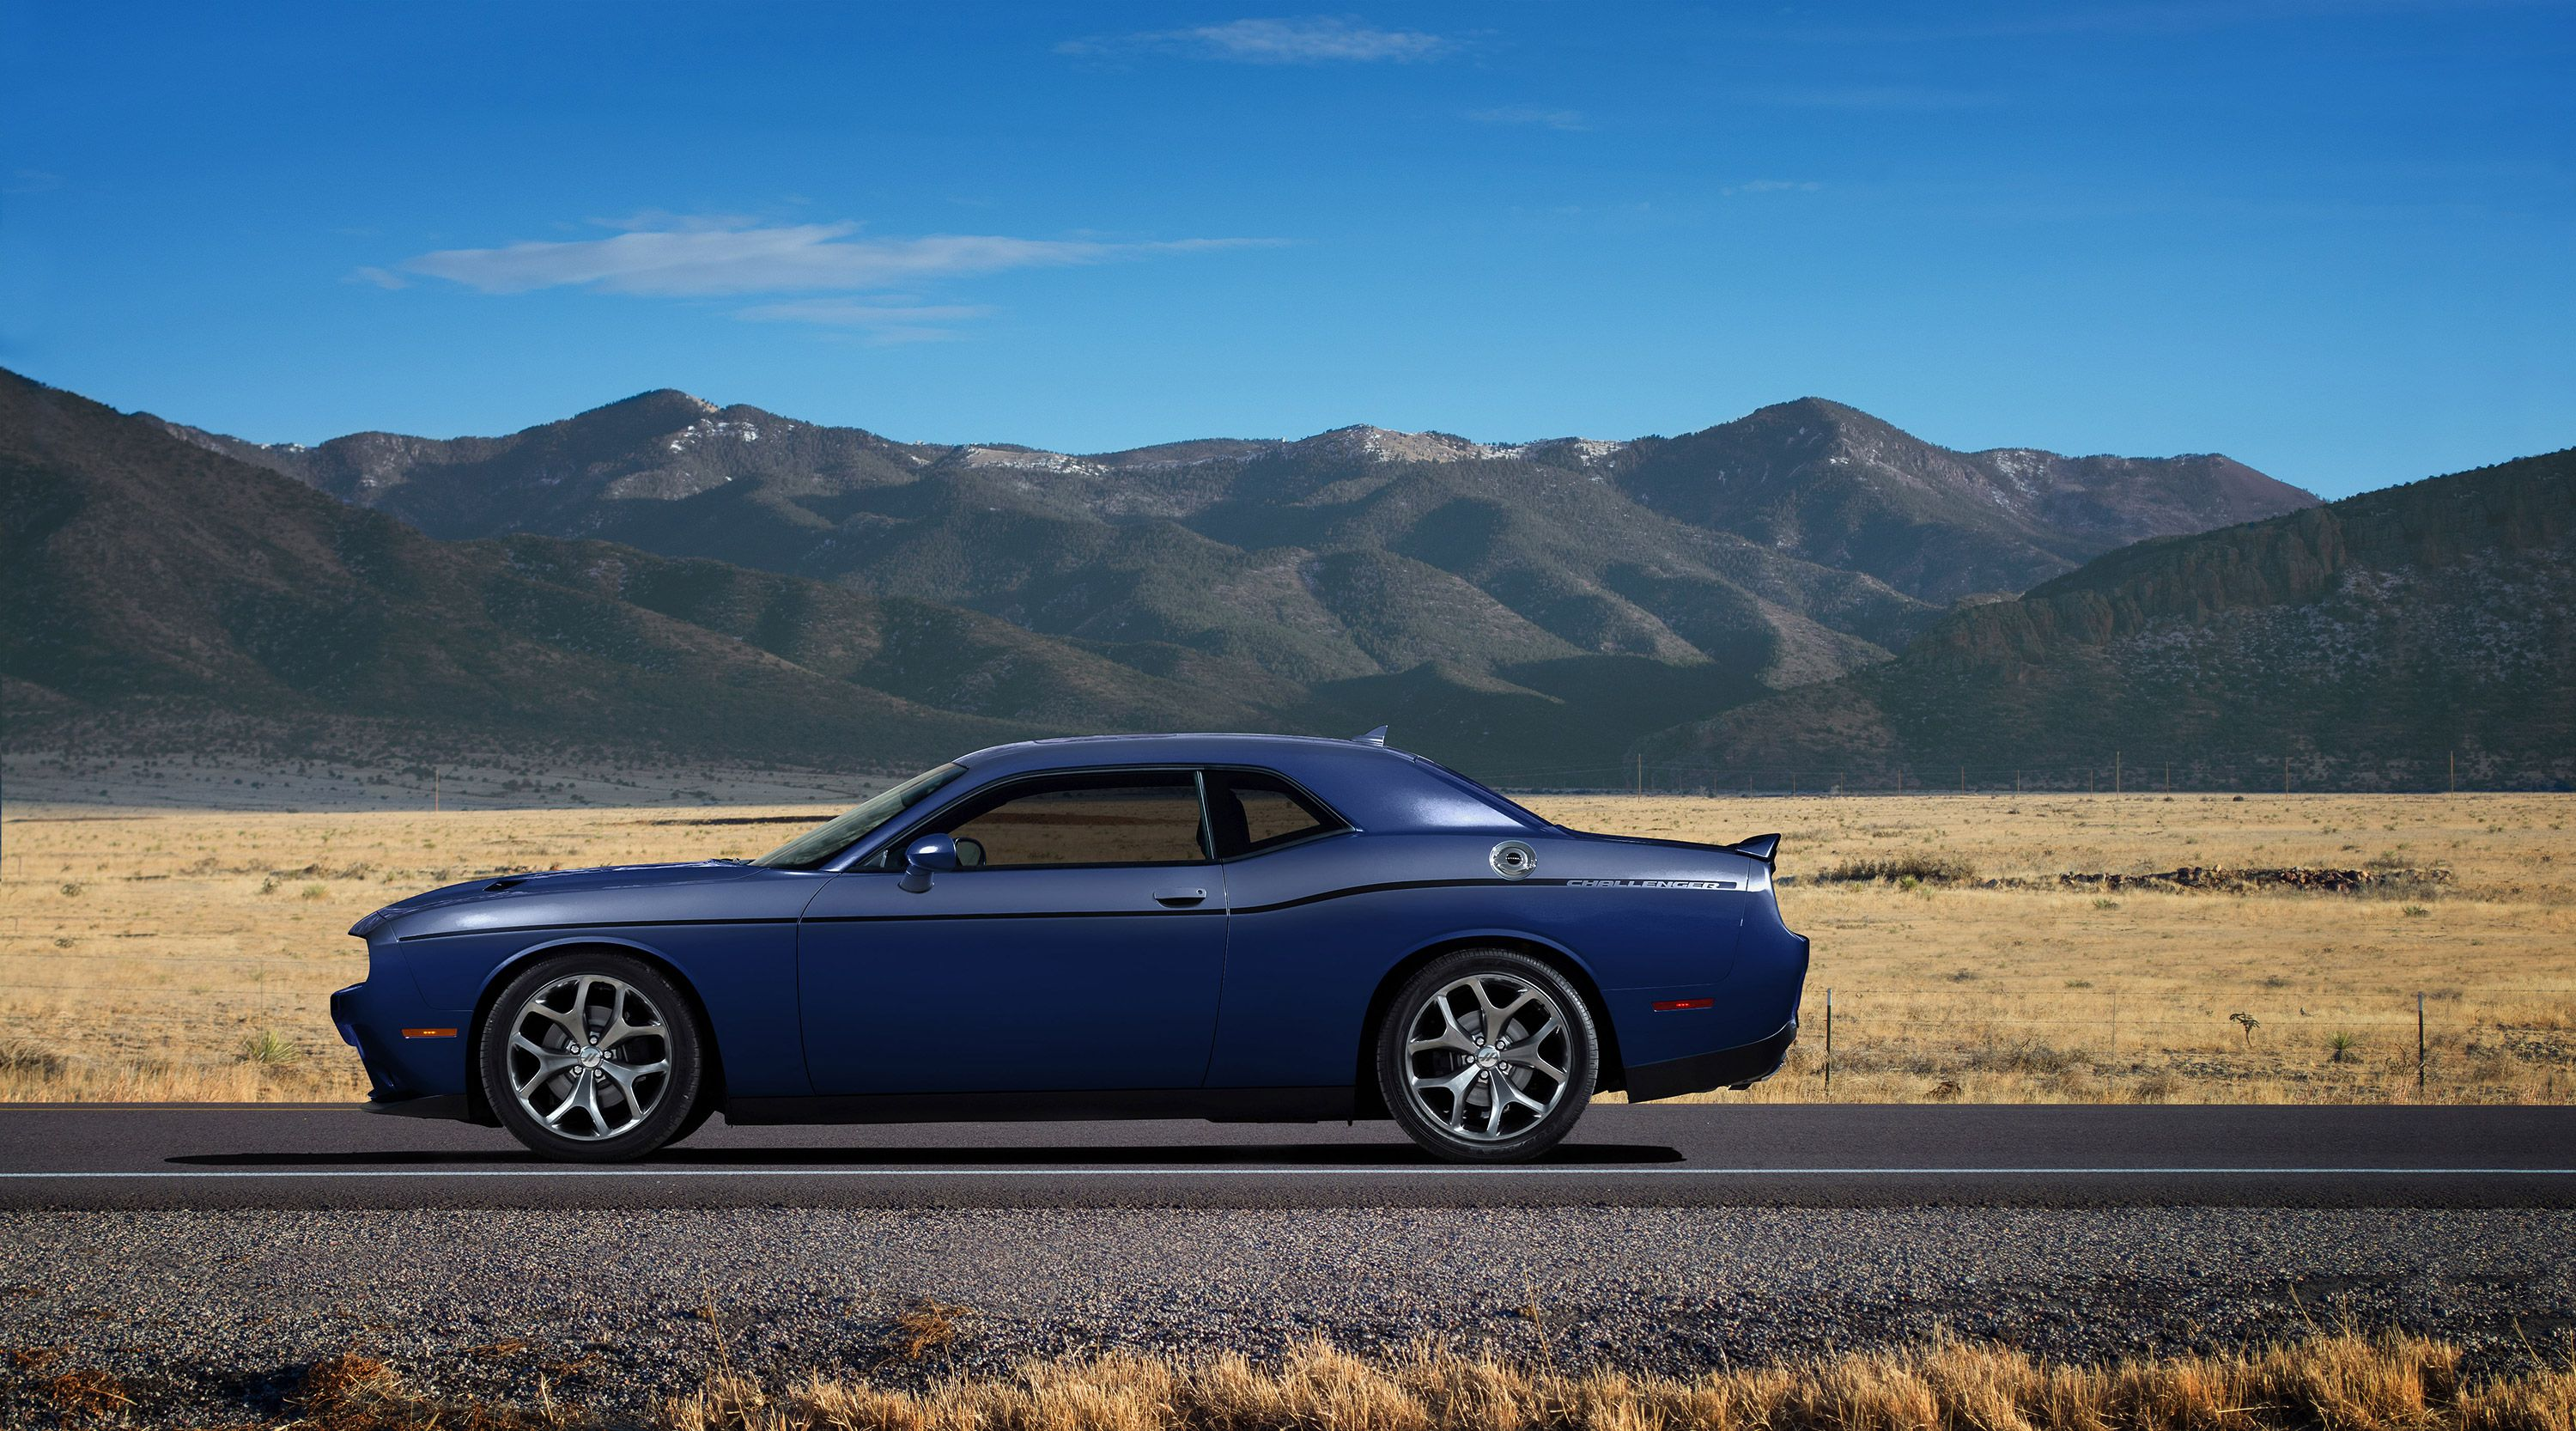 Find Unmistakable Muscle In A New Dodge Challenger Get Yours Today At Withnell Dodge Dodge New Dodge Challenger Dodge Charger